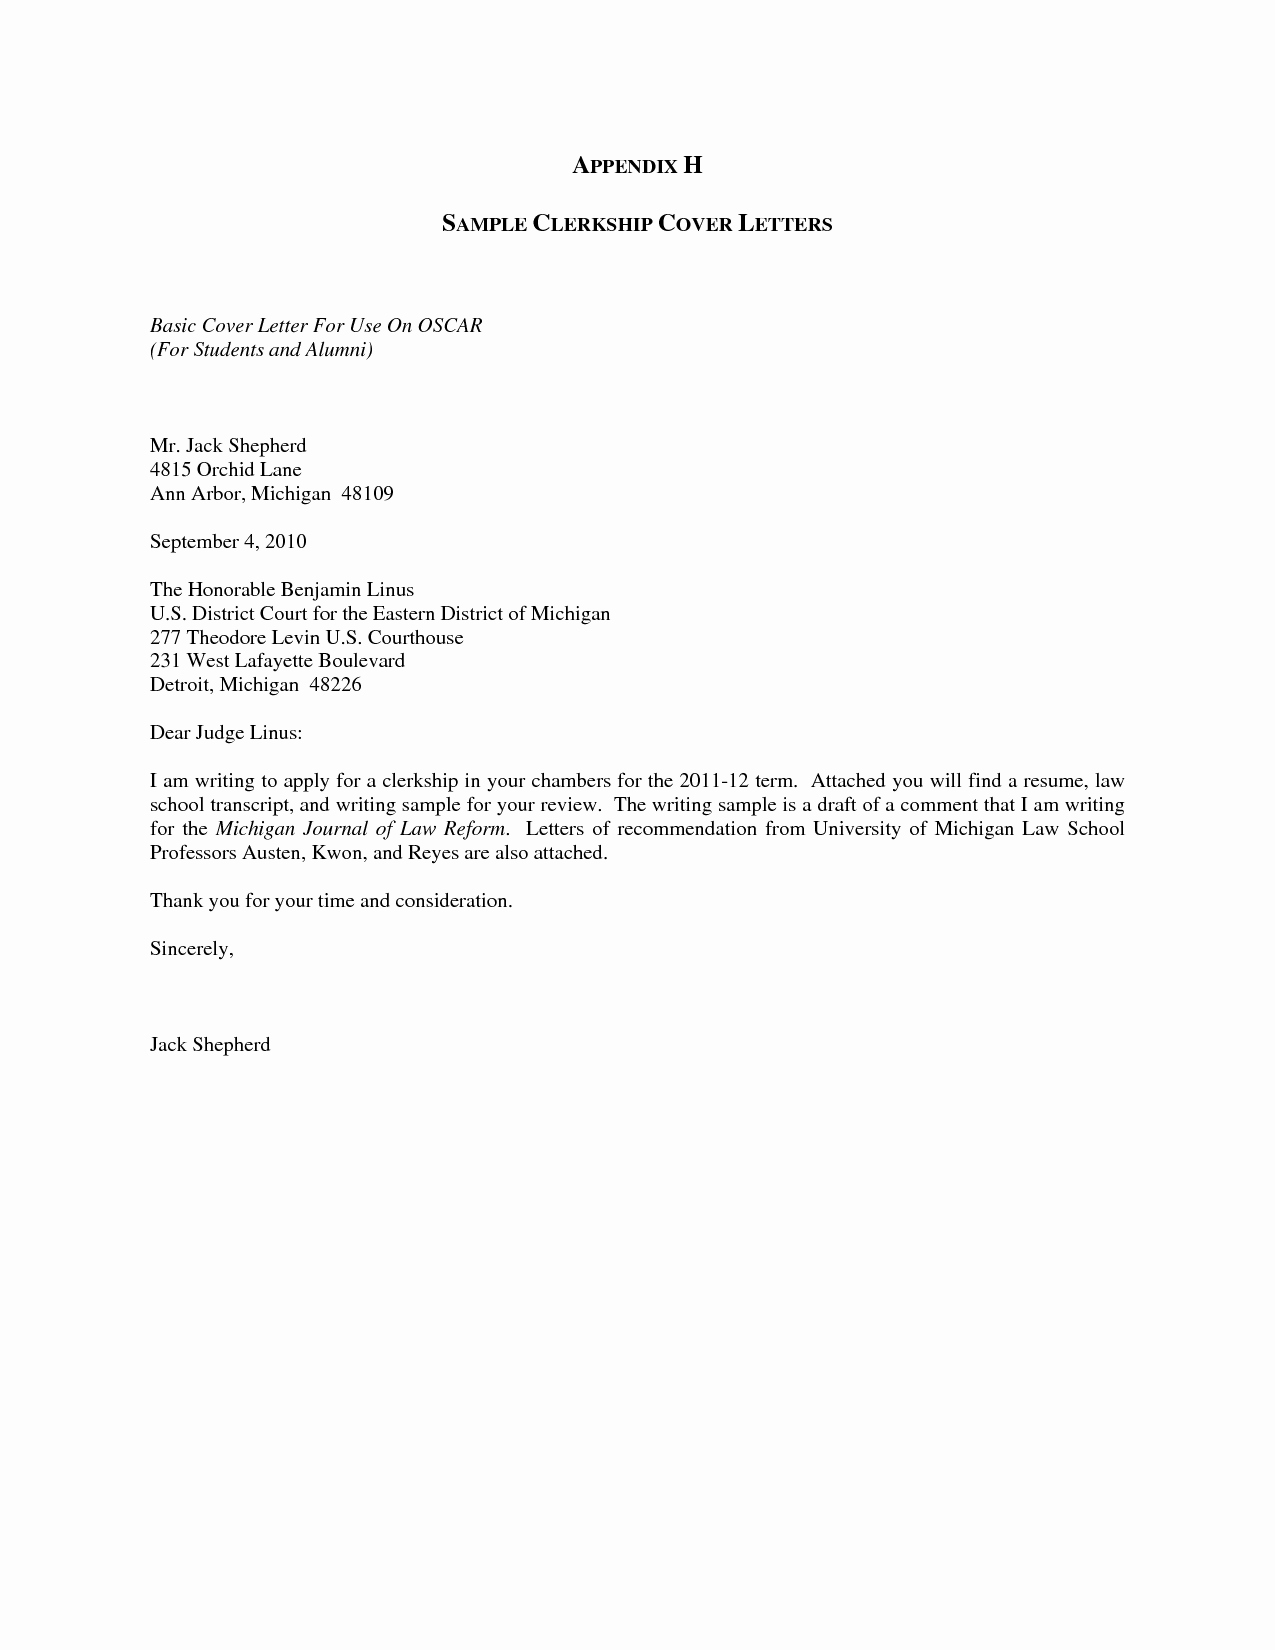 Simple Job Cover Letter Sample Beautiful Letter Template Category Page 2 Efoza